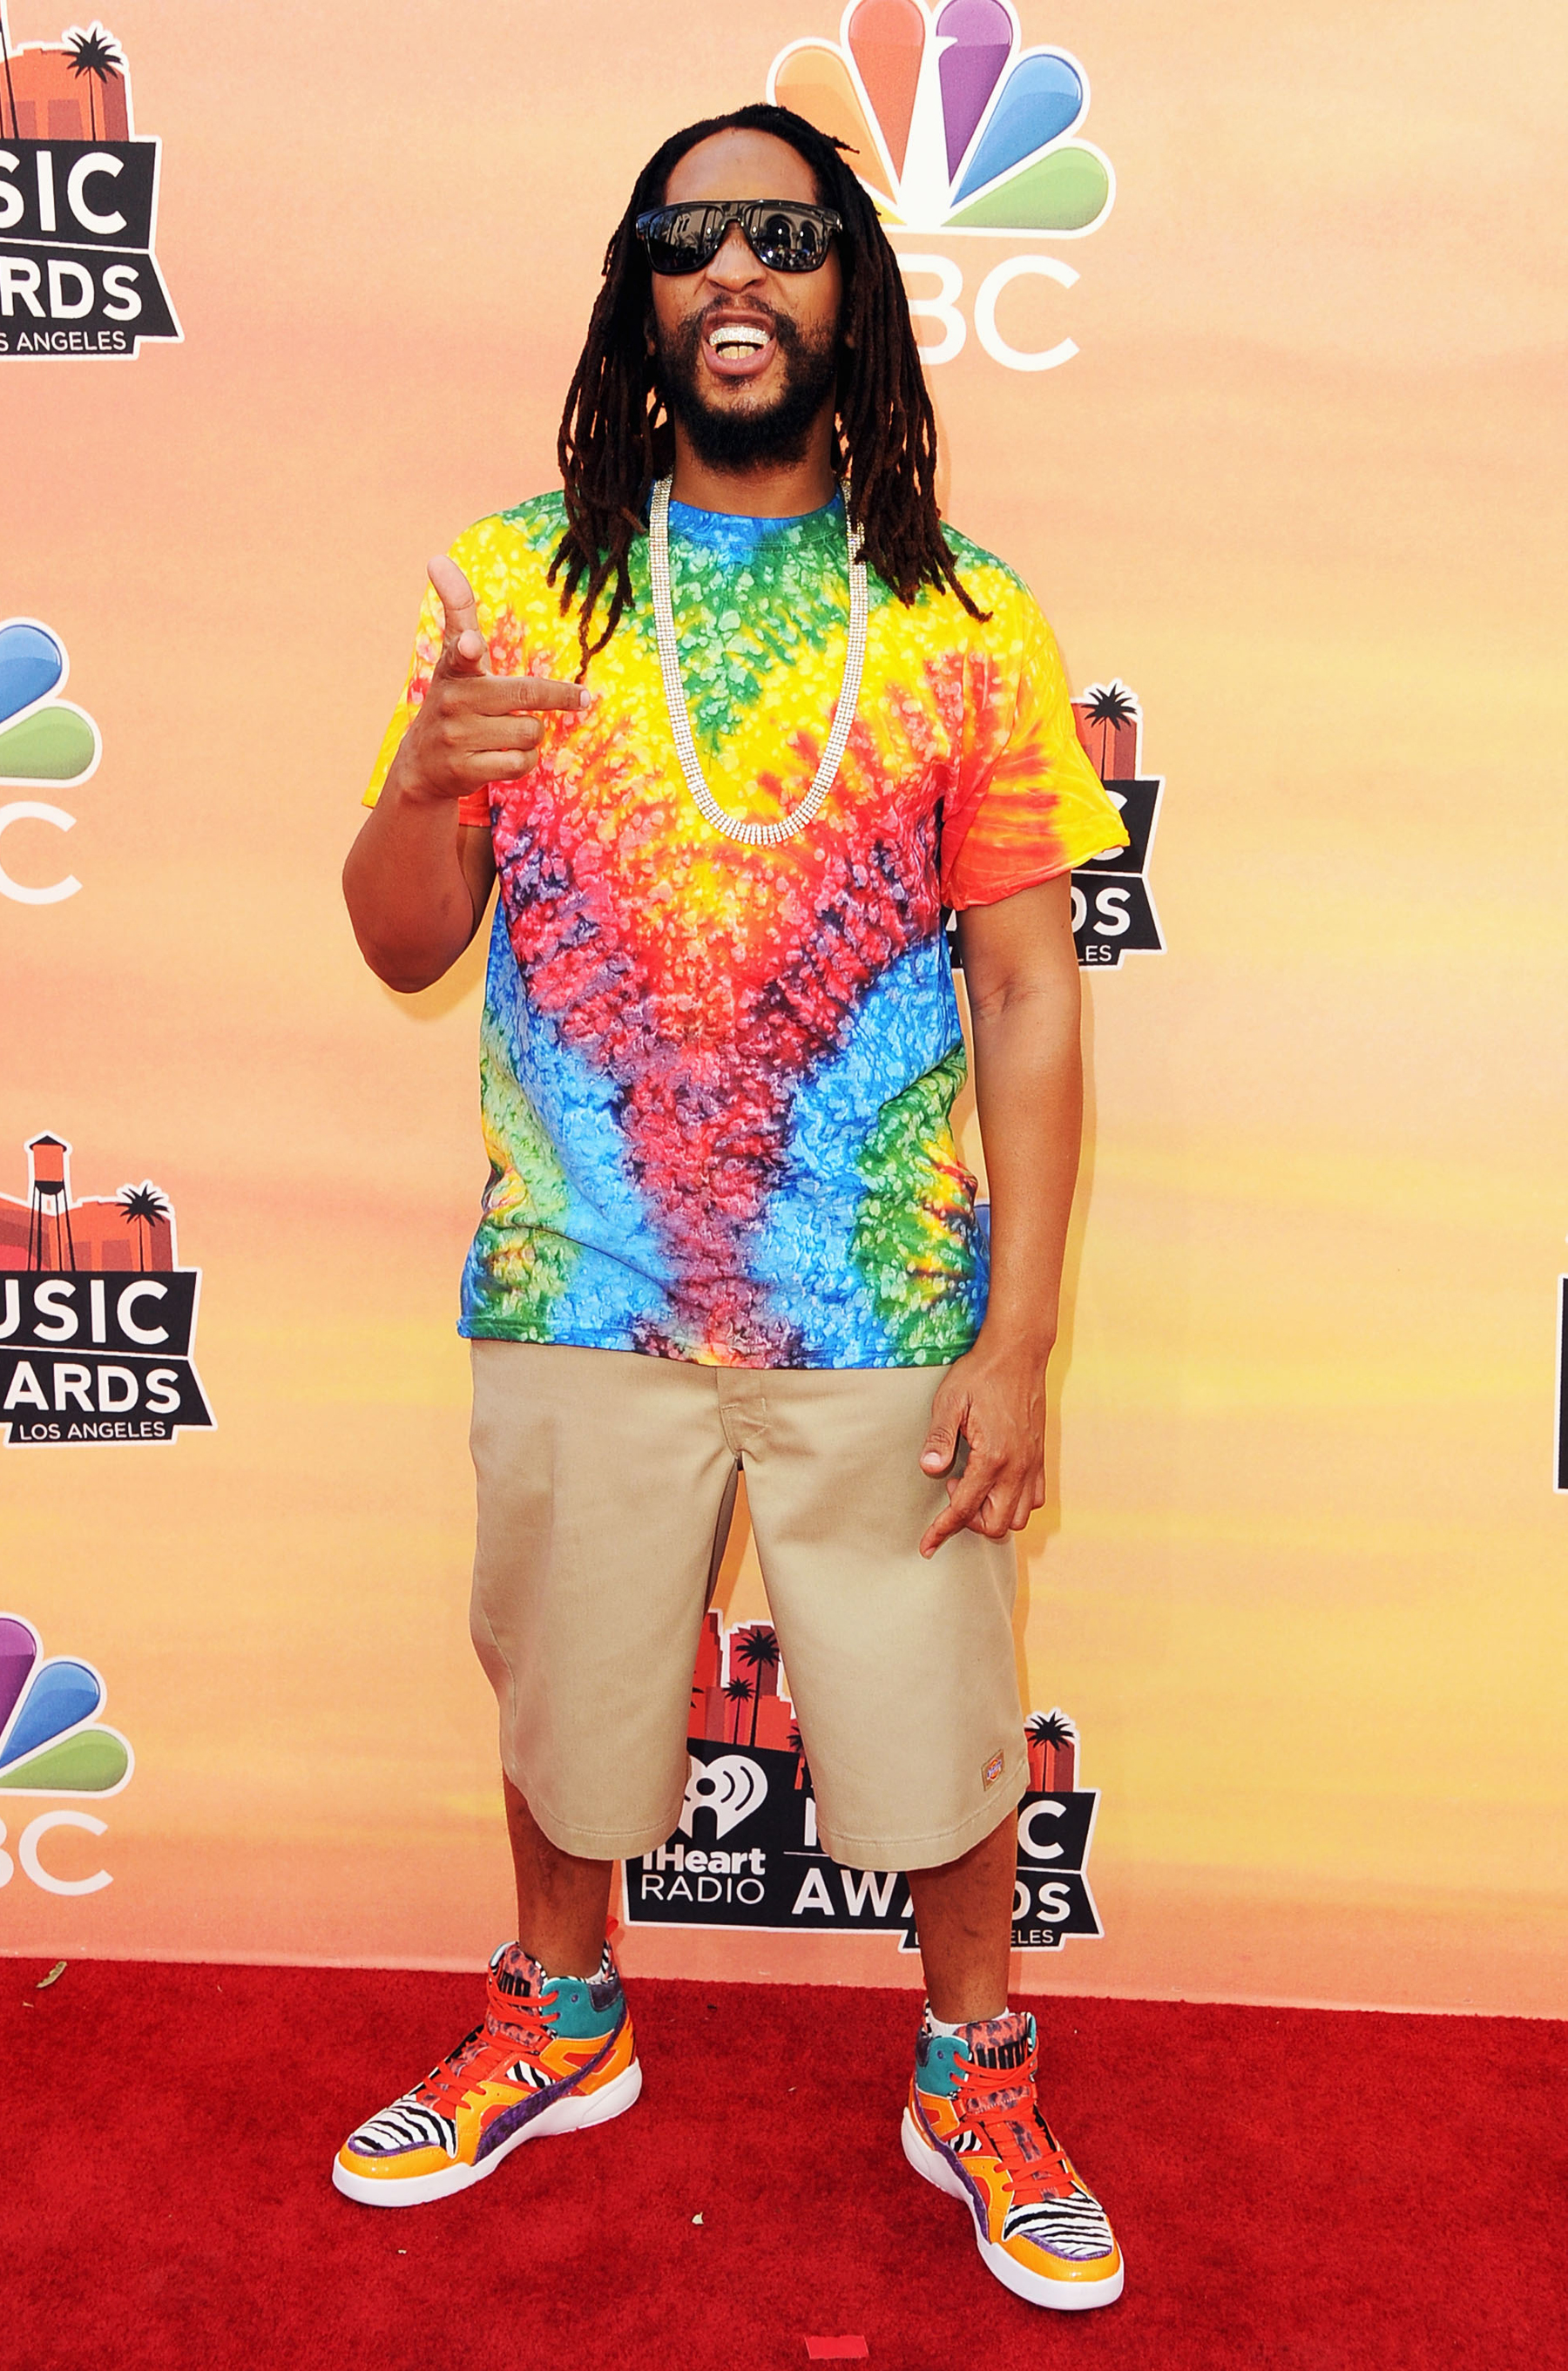 Lil Jon on Turning Down, Vampire Weekend, Prison and Donald Trump